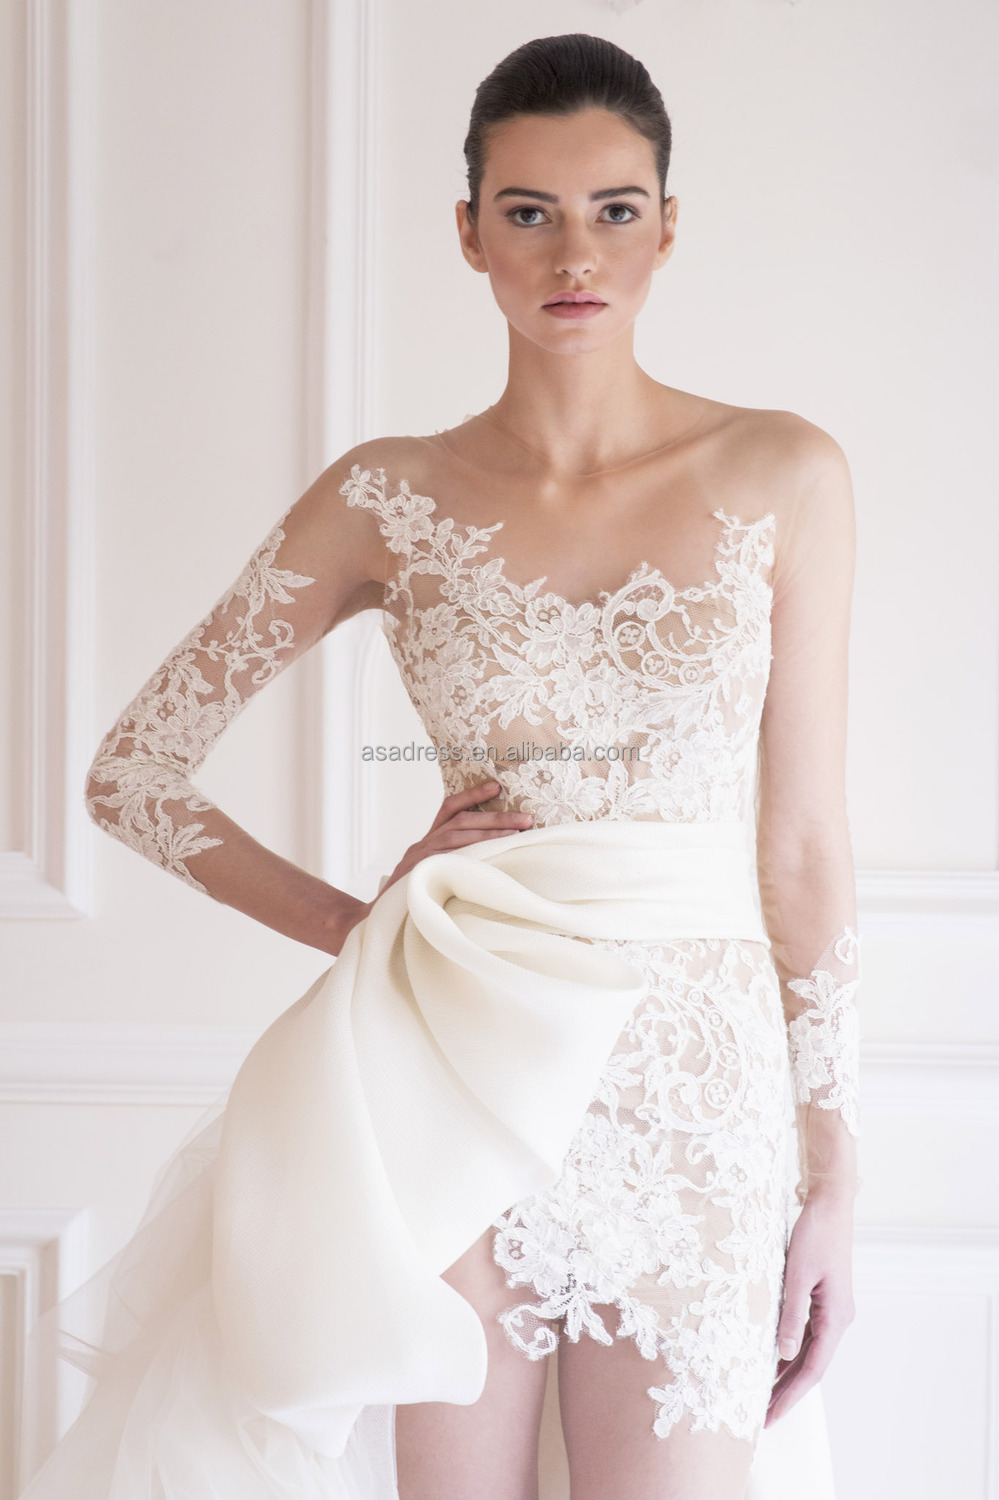 short wedding dresses with trains sheer lace wedding dress Latest Long Sleeve Bridal Gown Short Wedding Dress With